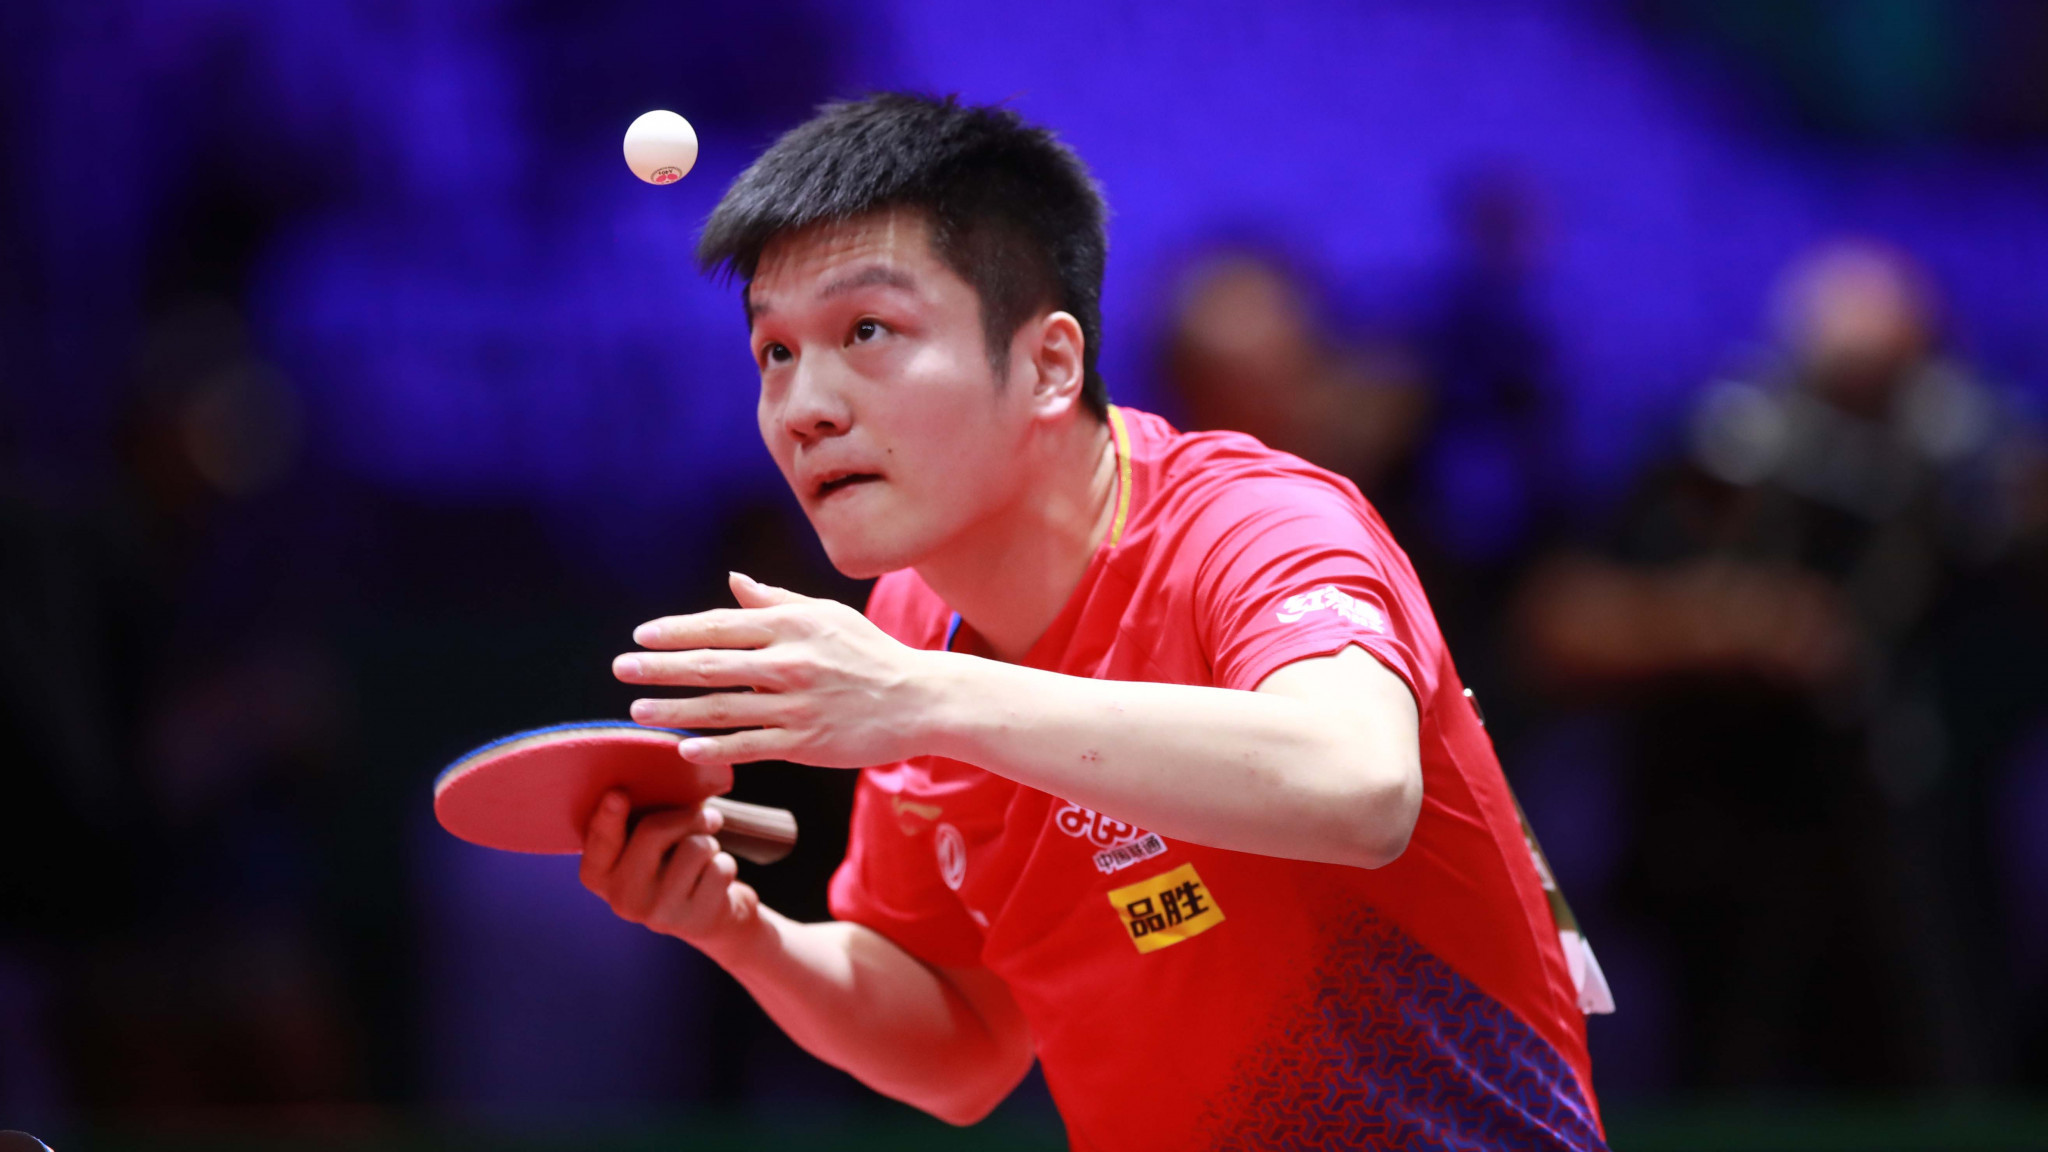 Fan Zhendong sits top of the revamped men's table tennis world rankings ©Getty Images